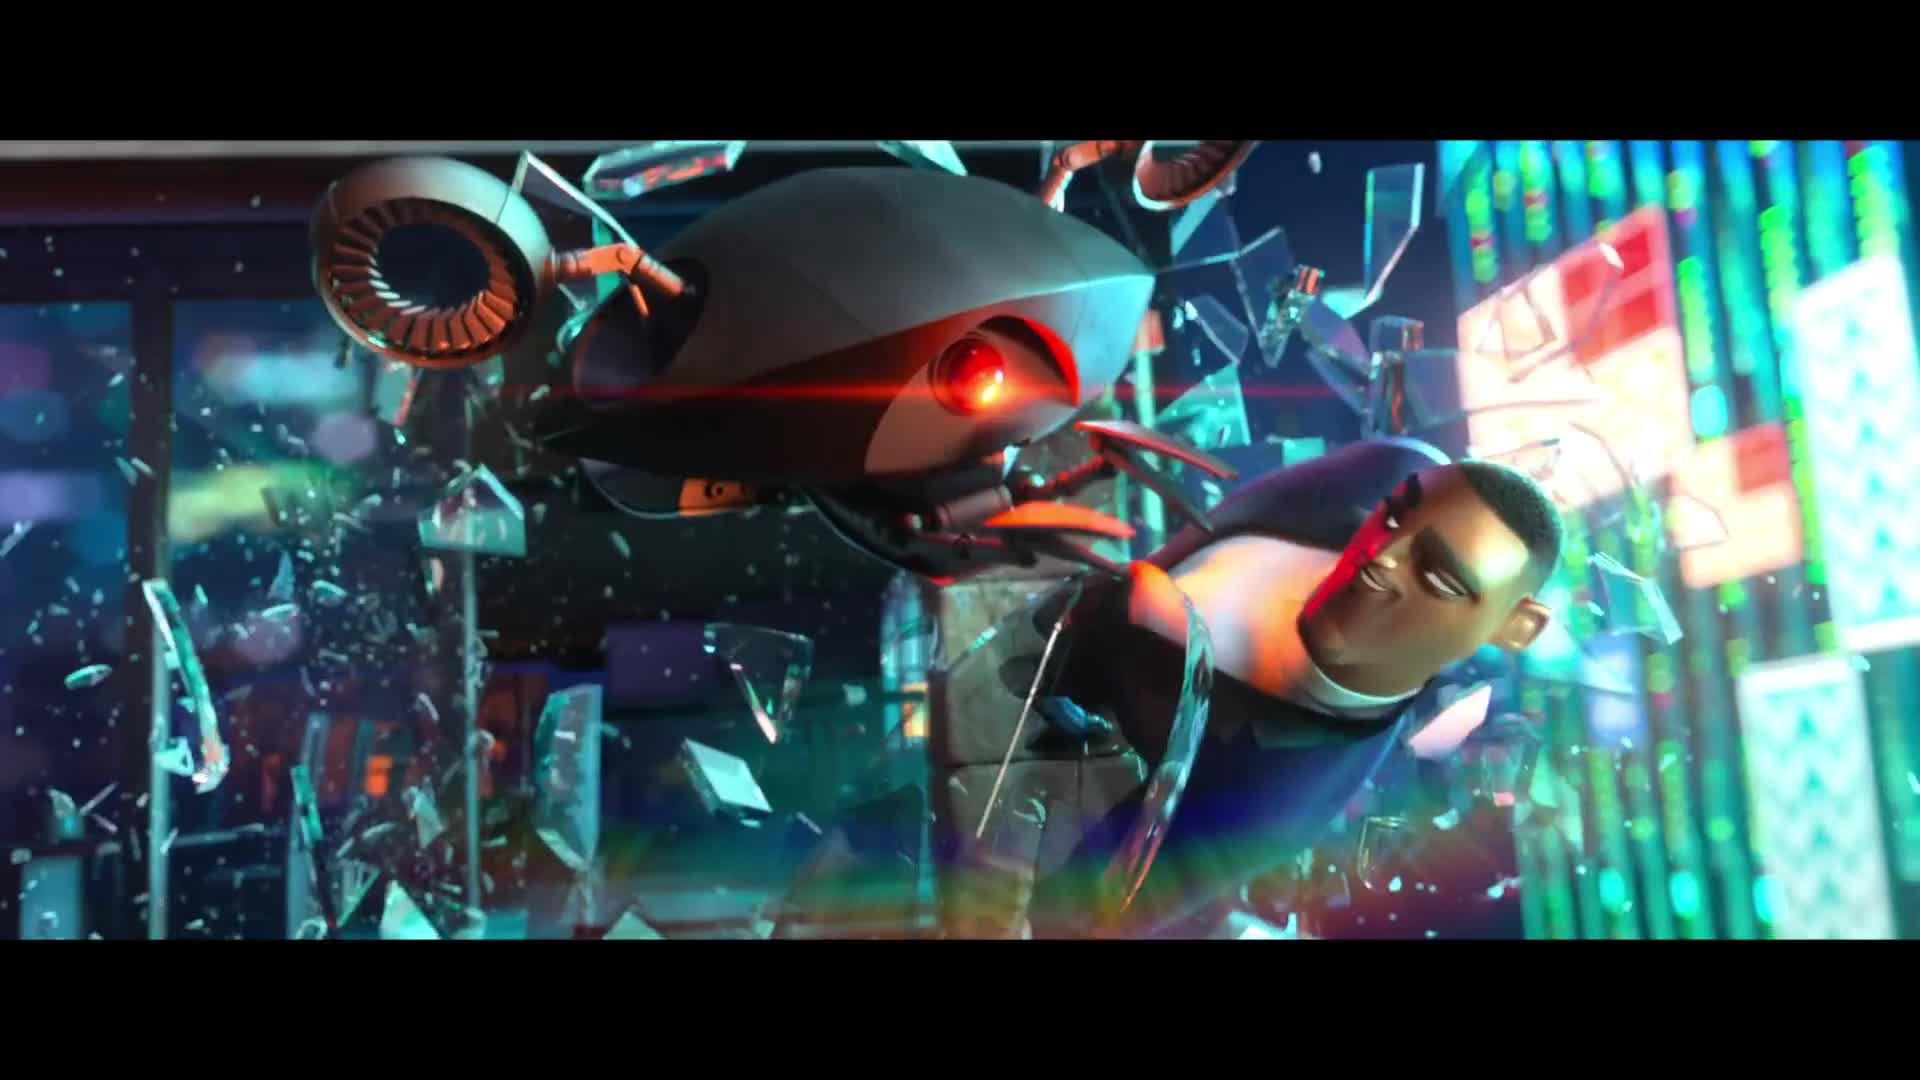 Spies in Disguise - Official Trailer #3 [HD] screen capture